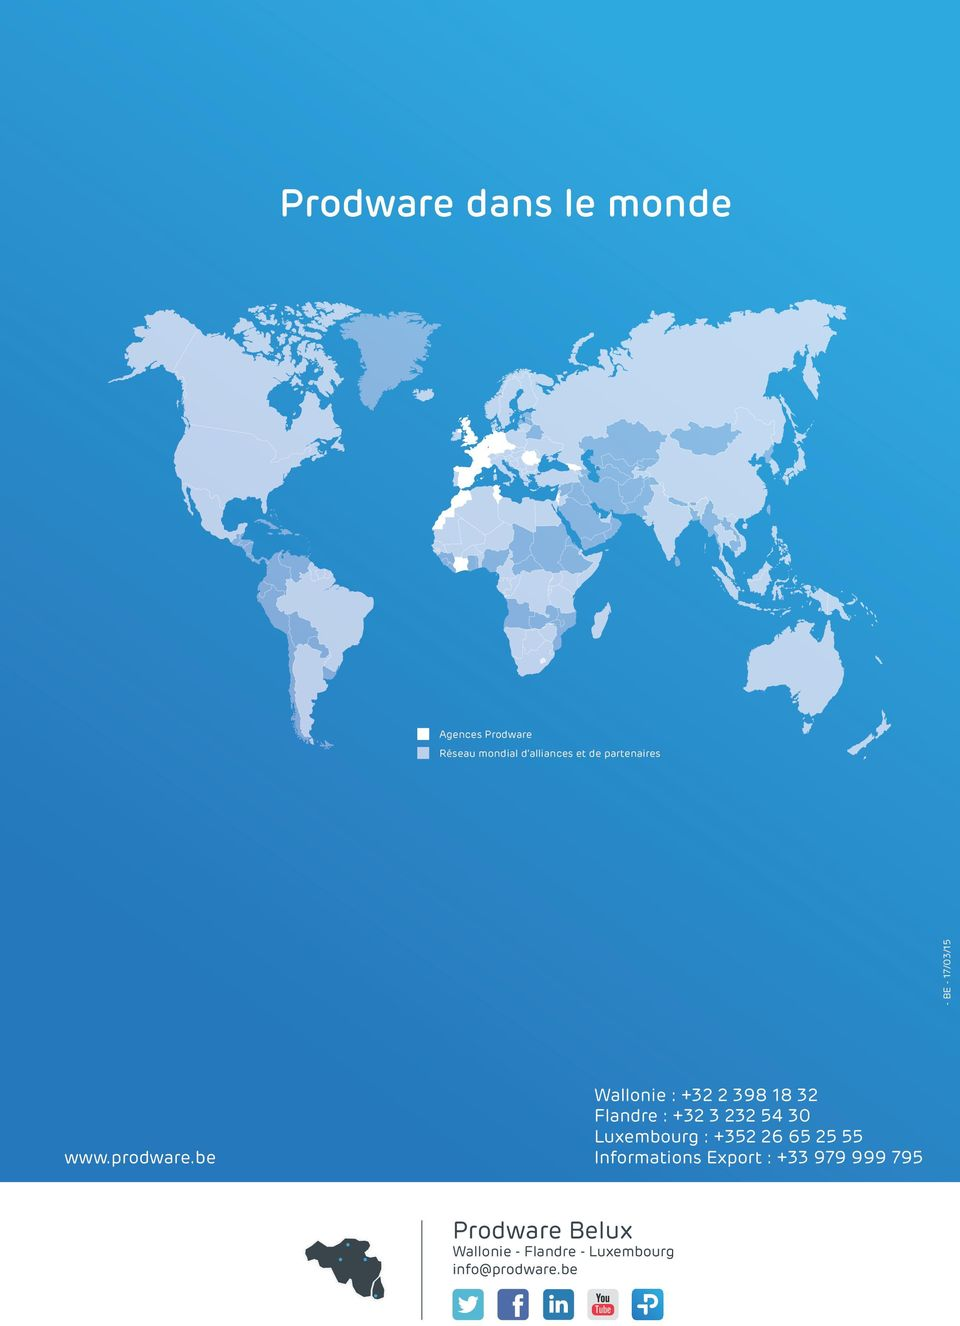 54 30 Luxembourg : +352 26 65 25 55 www.prodware.